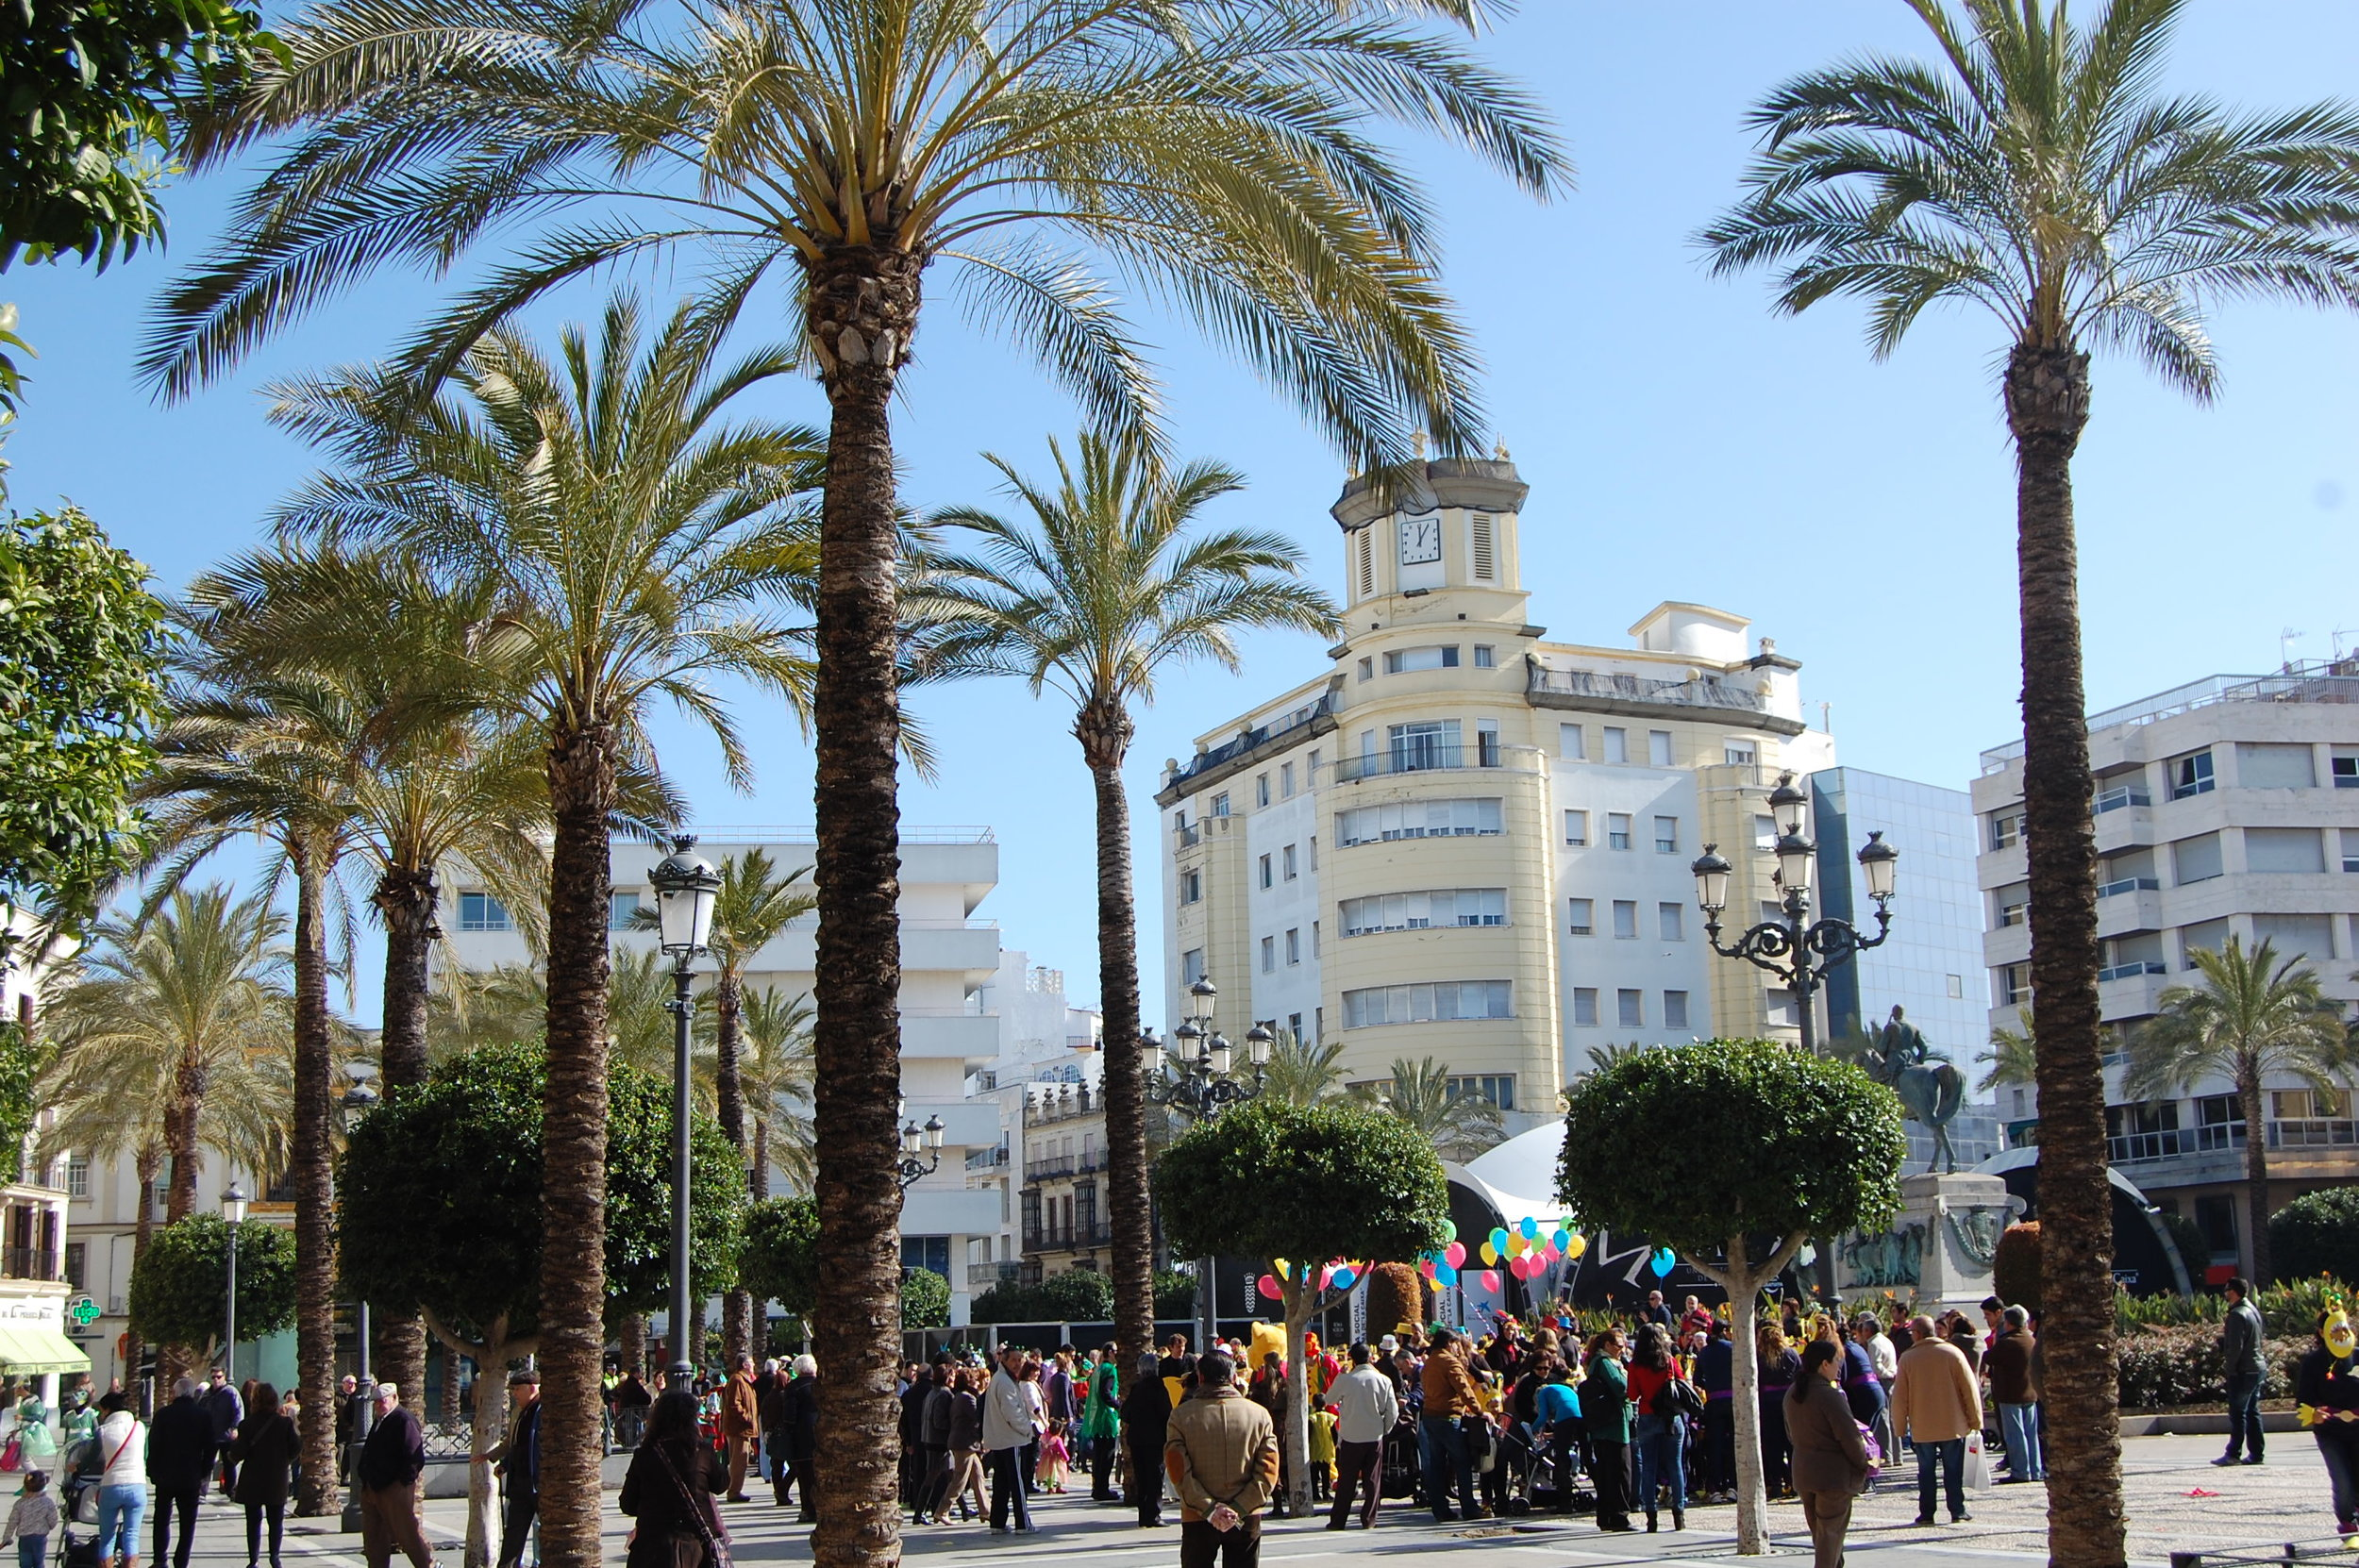 Plaza Arenal is your starting point for Jerez